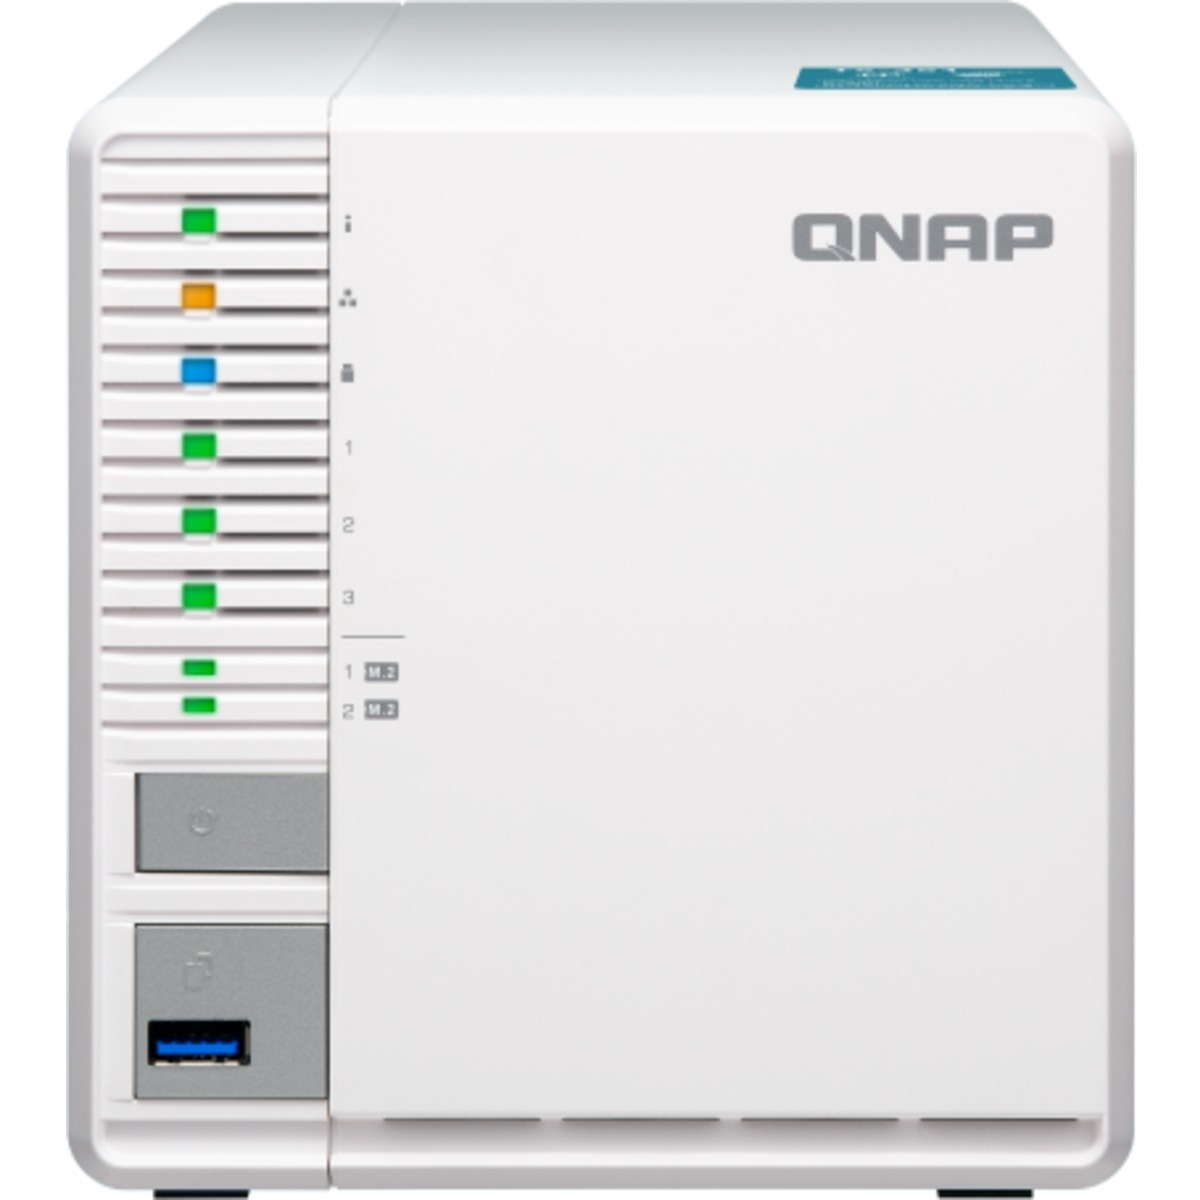 buy $1059 QNAP TS-351 18tb Desktop NAS - Network Attached Storage Device 3x6000gb Seagate IronWolf Pro ST6000NE0023 3.5 7200rpm SATA 6Gb/s HDD NAS Class Drives Installed - Burn-In Tested - nas headquarters buy network attached storage server device das new sale raid-5 free shipping usa TS-351